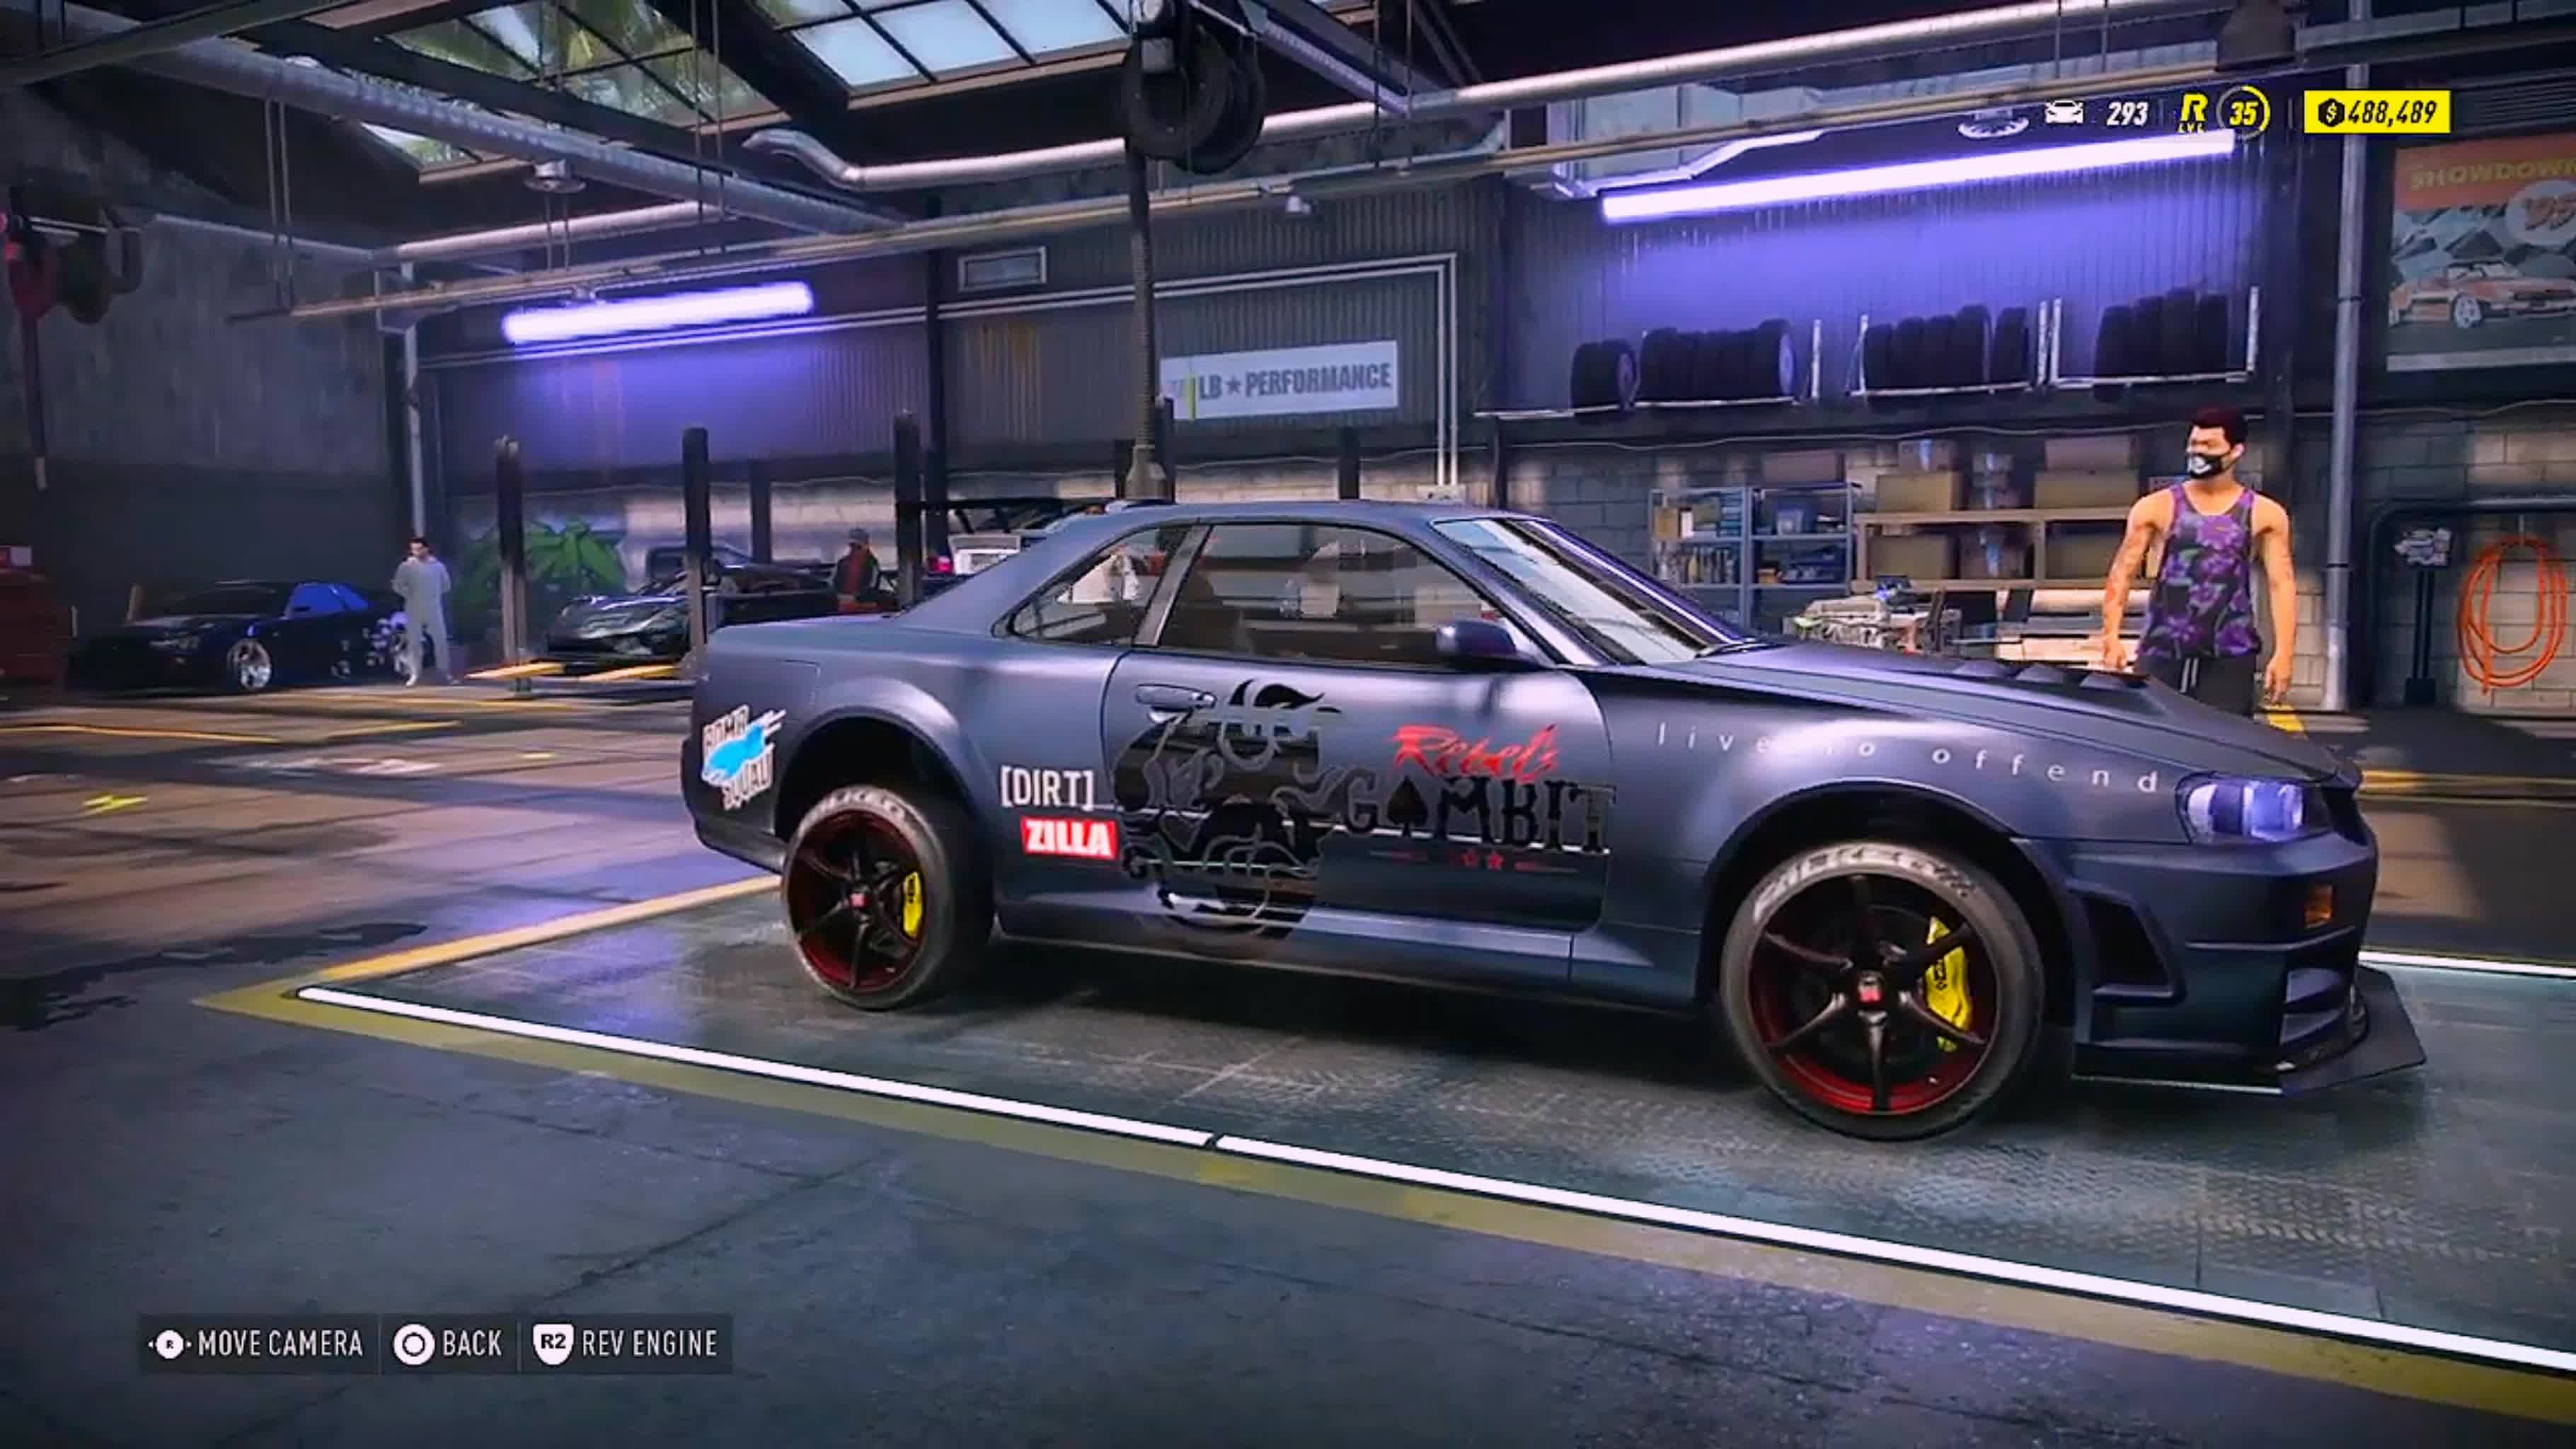 Need For Speed: General - Rally Spec R34 (DIRT ZILLA) says hi \(^•^) ( Oo\__SKYLINE__/oO ) video cover image 0